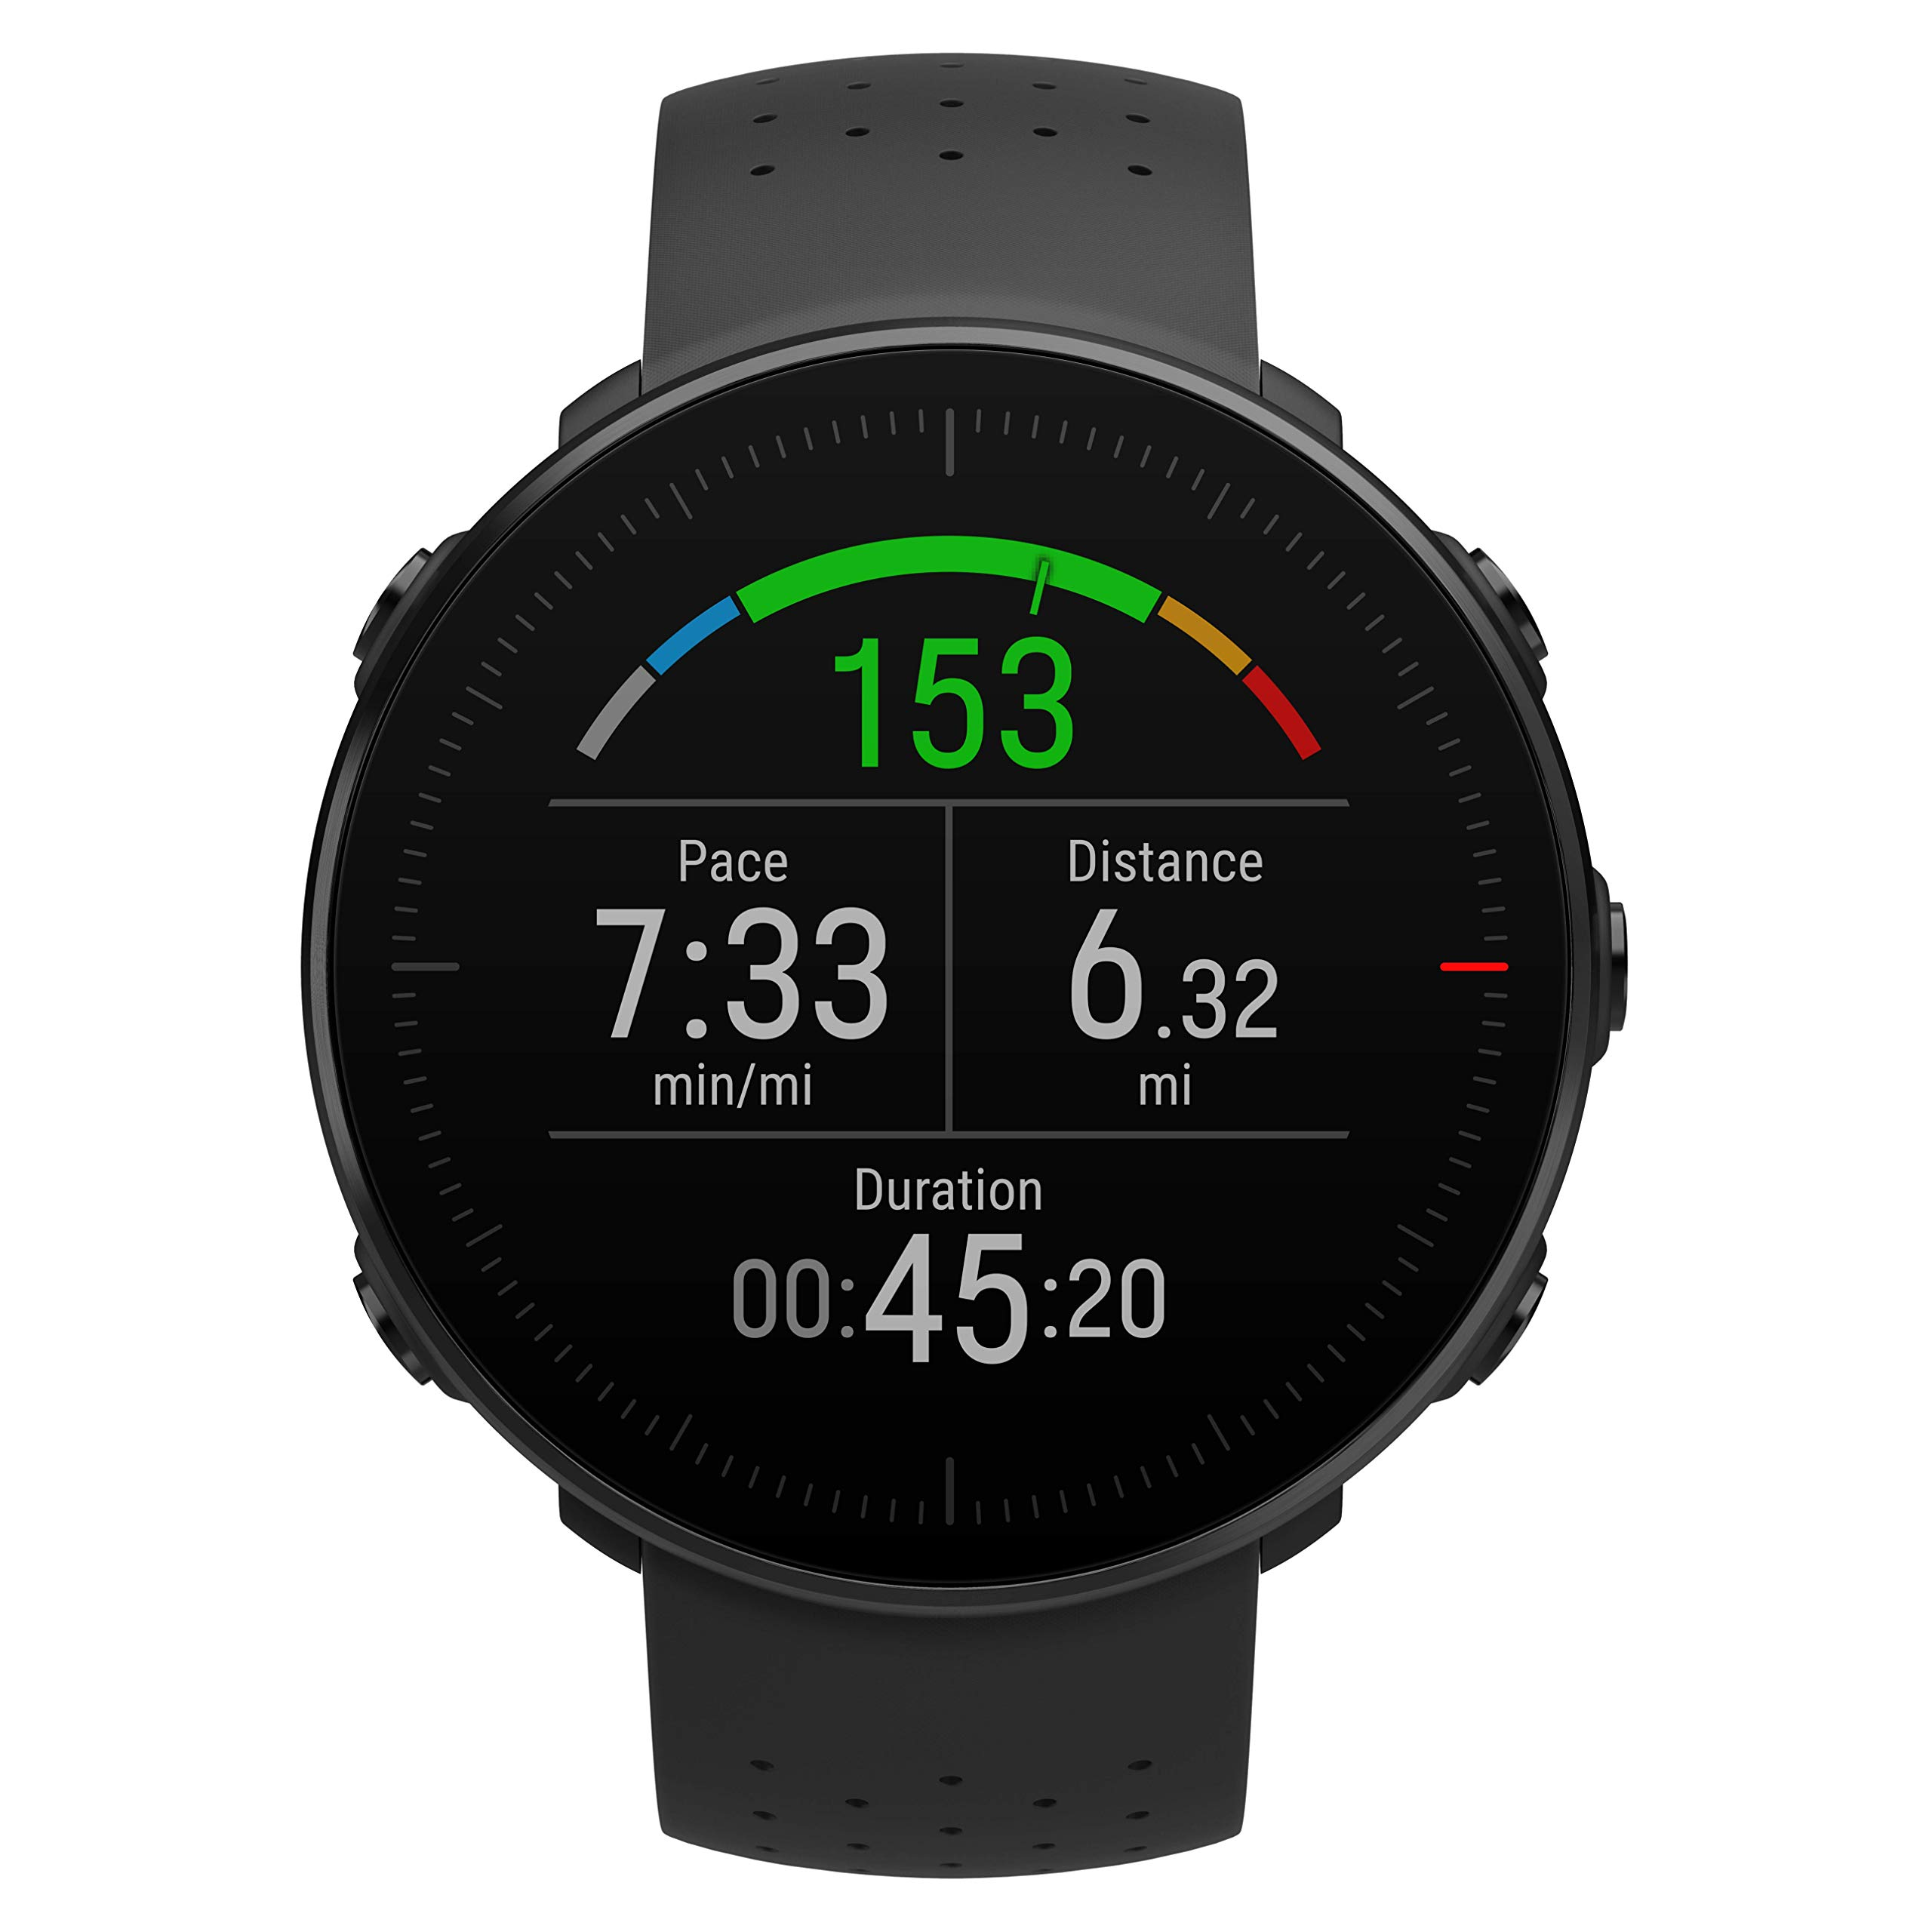 POLAR VANTAGE M –Advanced Running & Multisport Watch with GPS and Wrist-based Heart Rate (Lightweight Design & Latest Technology), Black, M-L by Polar (Image #8)